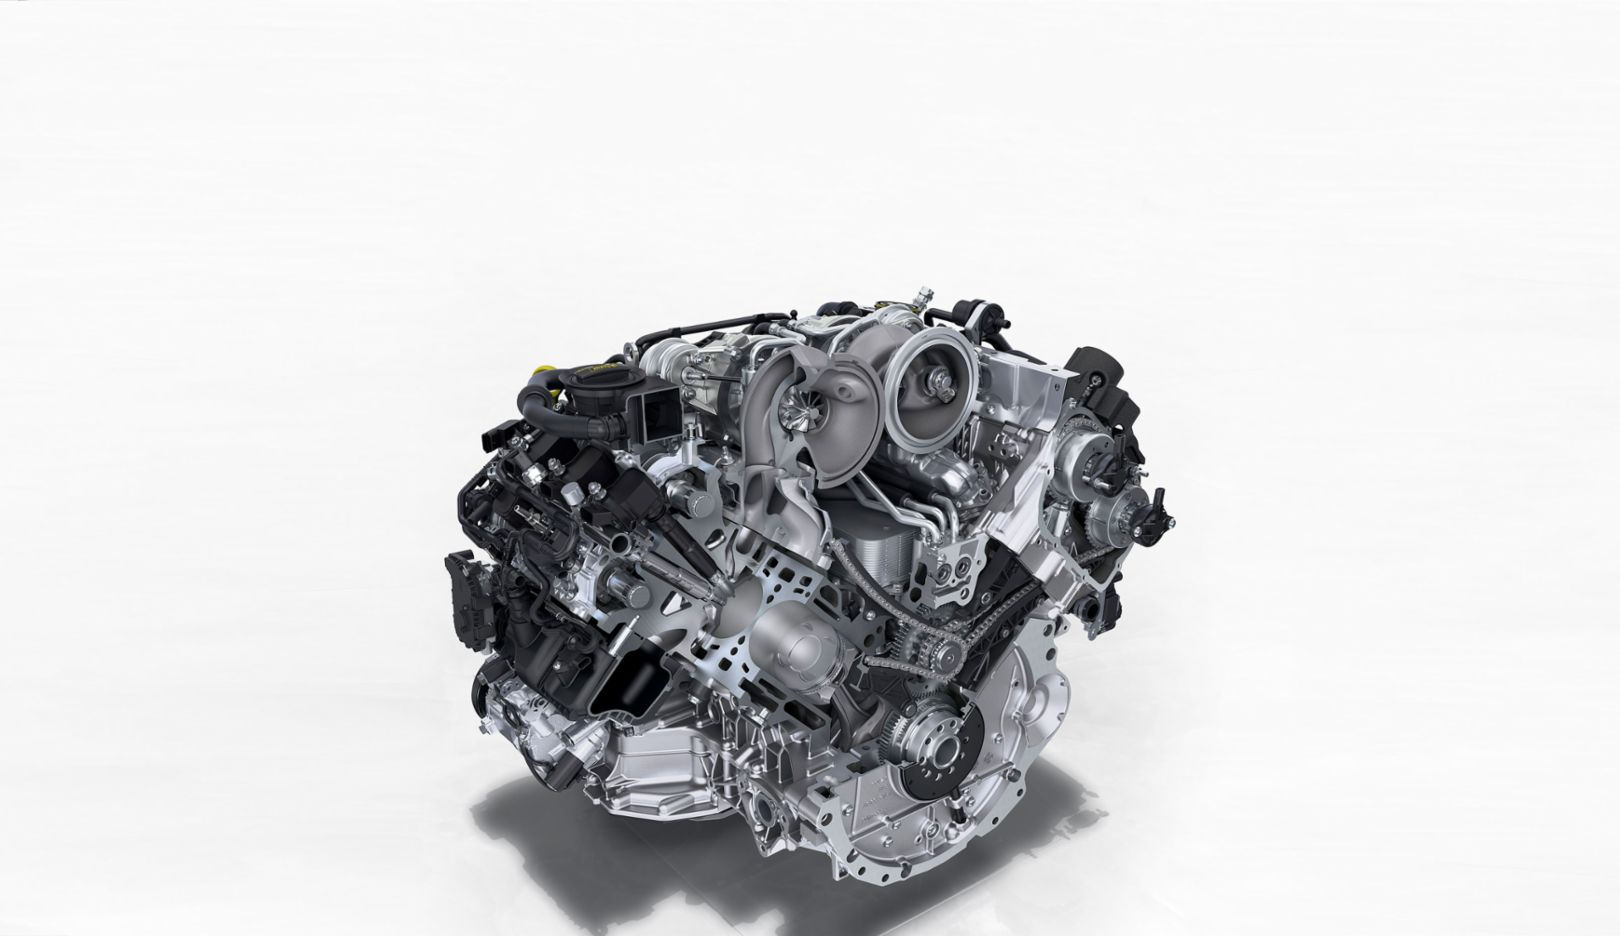 The engine architecture of V8 machines